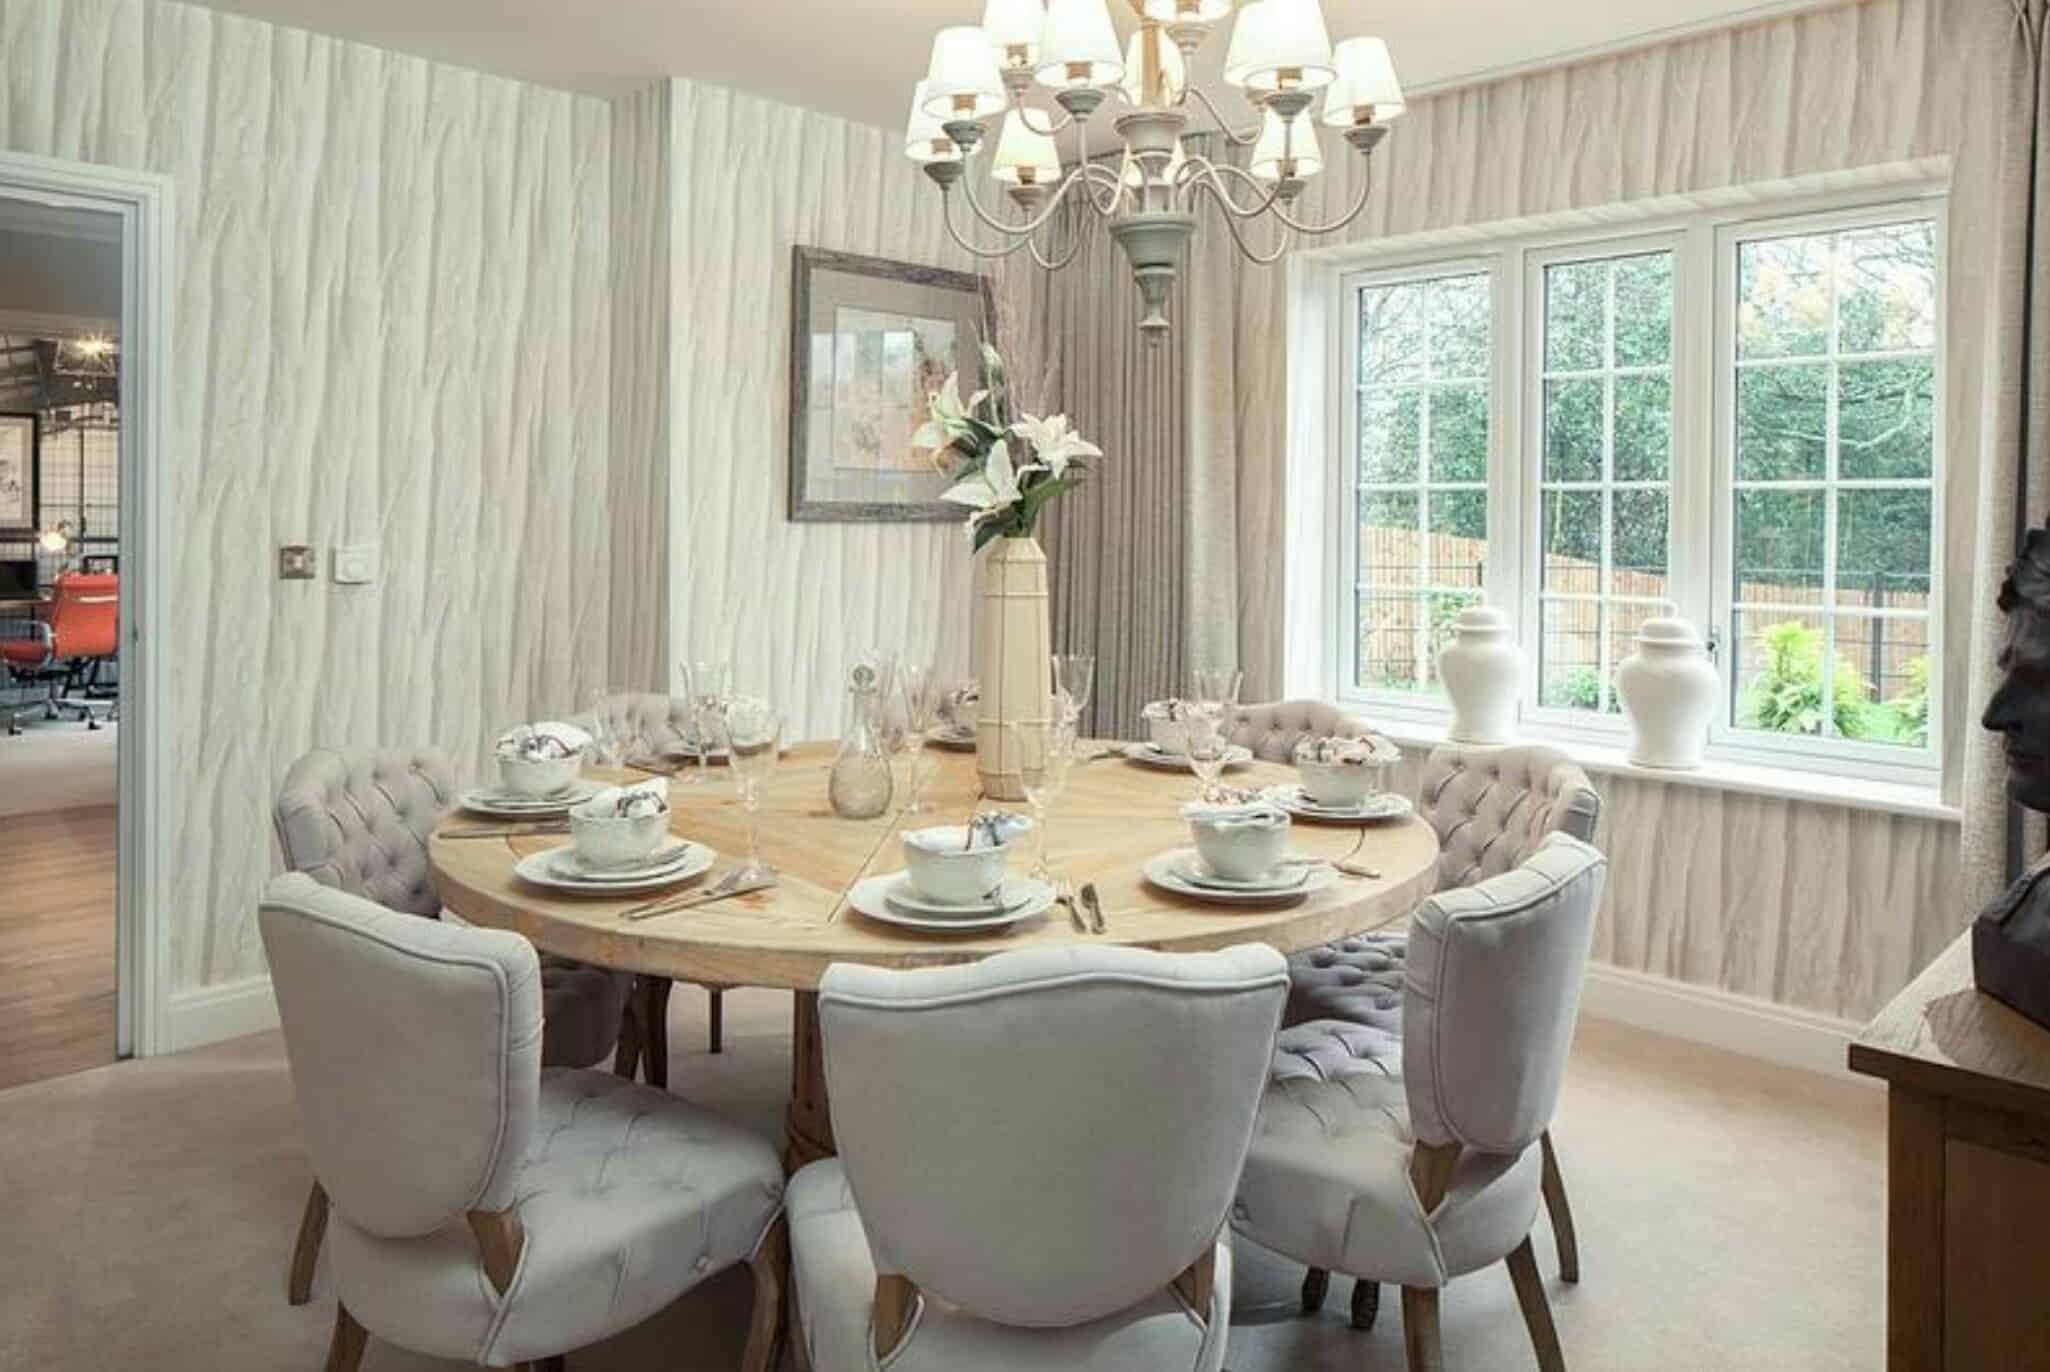 Modern Dining Room Tables That Are on Trend View in gallery sopisticated dining table Modern Dining Room Tables That  Are on Trend